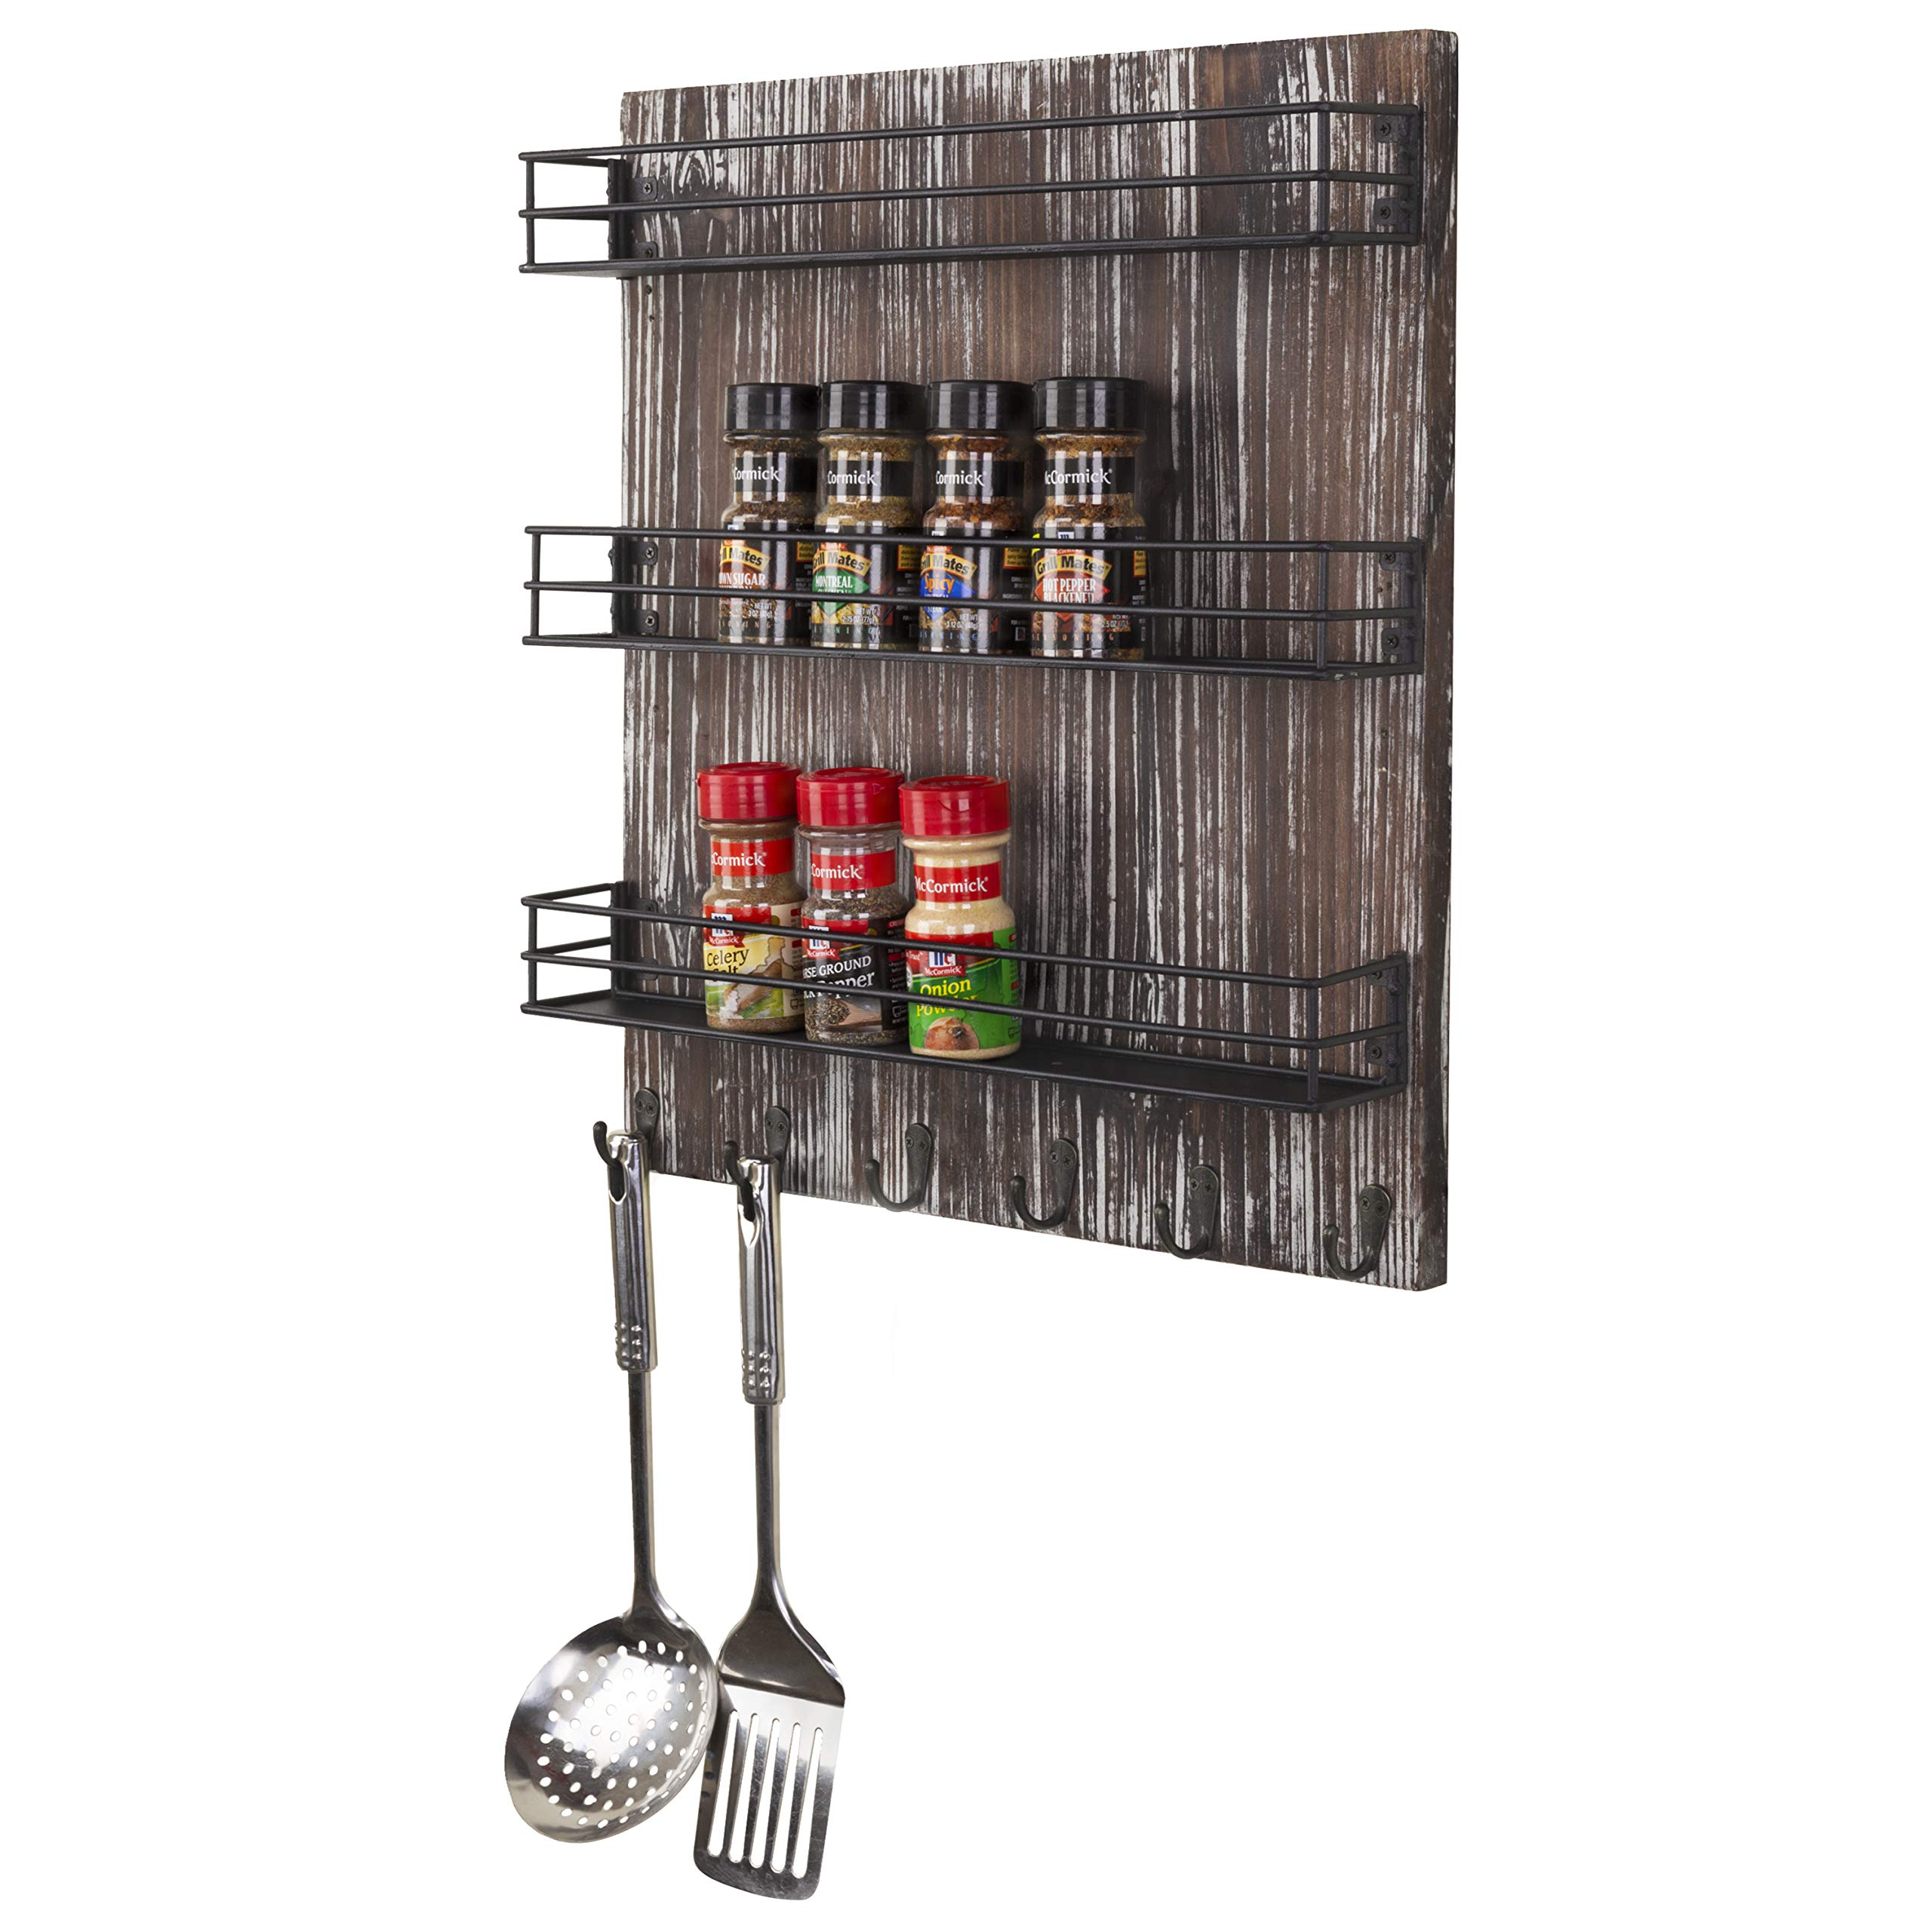 MyGift Wall-Mounted Torched Wood 3-Tier Spice Rack with 5 Hooks by MyGift